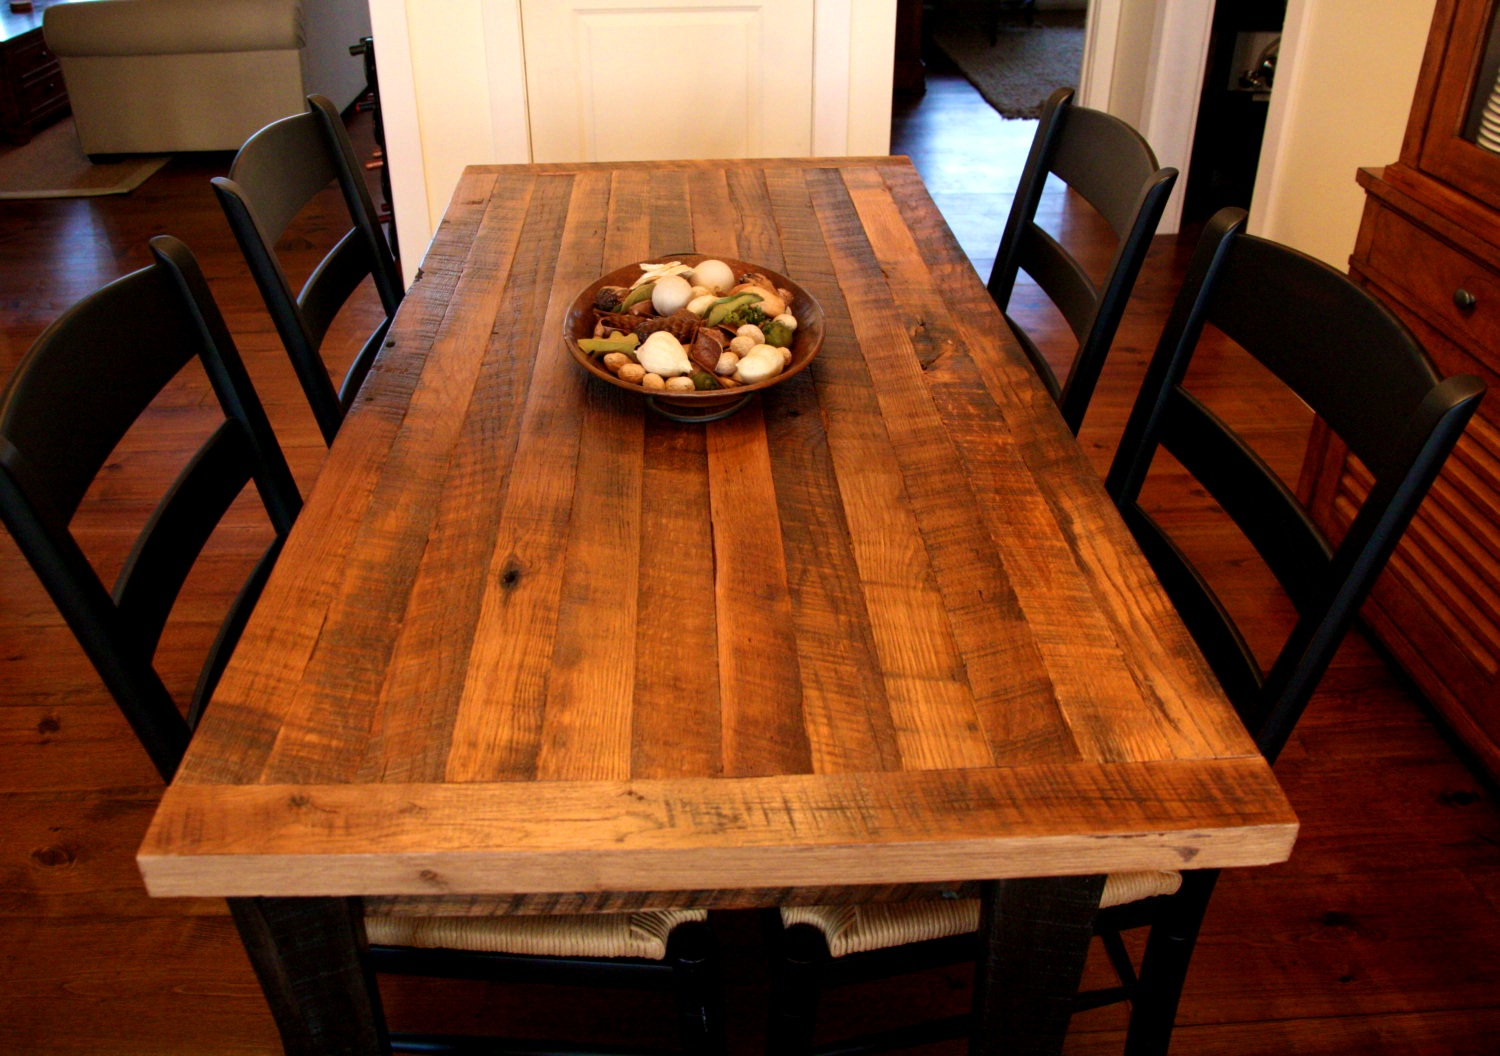 15 DIY Butcher Block Projects Lovely Spaces : kitchen table from lovelyspaces.com size 1500 x 1056 jpeg 327kB